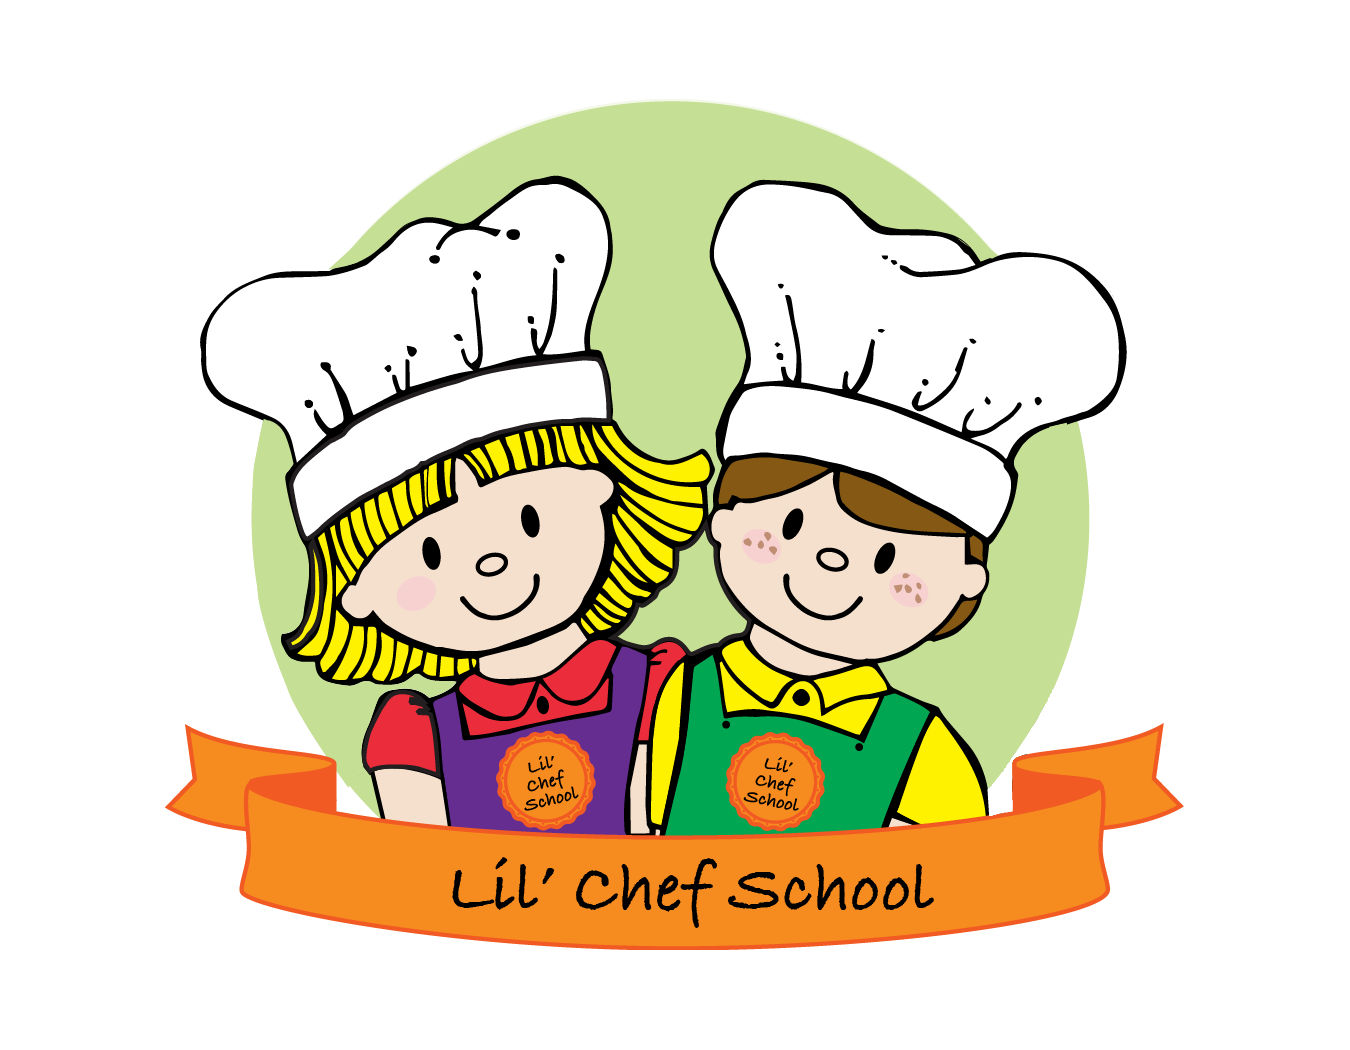 Adult cooking class clipart free vector freeuse download Welcome to Lil\' Chef School - A Cooking School for Kids vector freeuse download